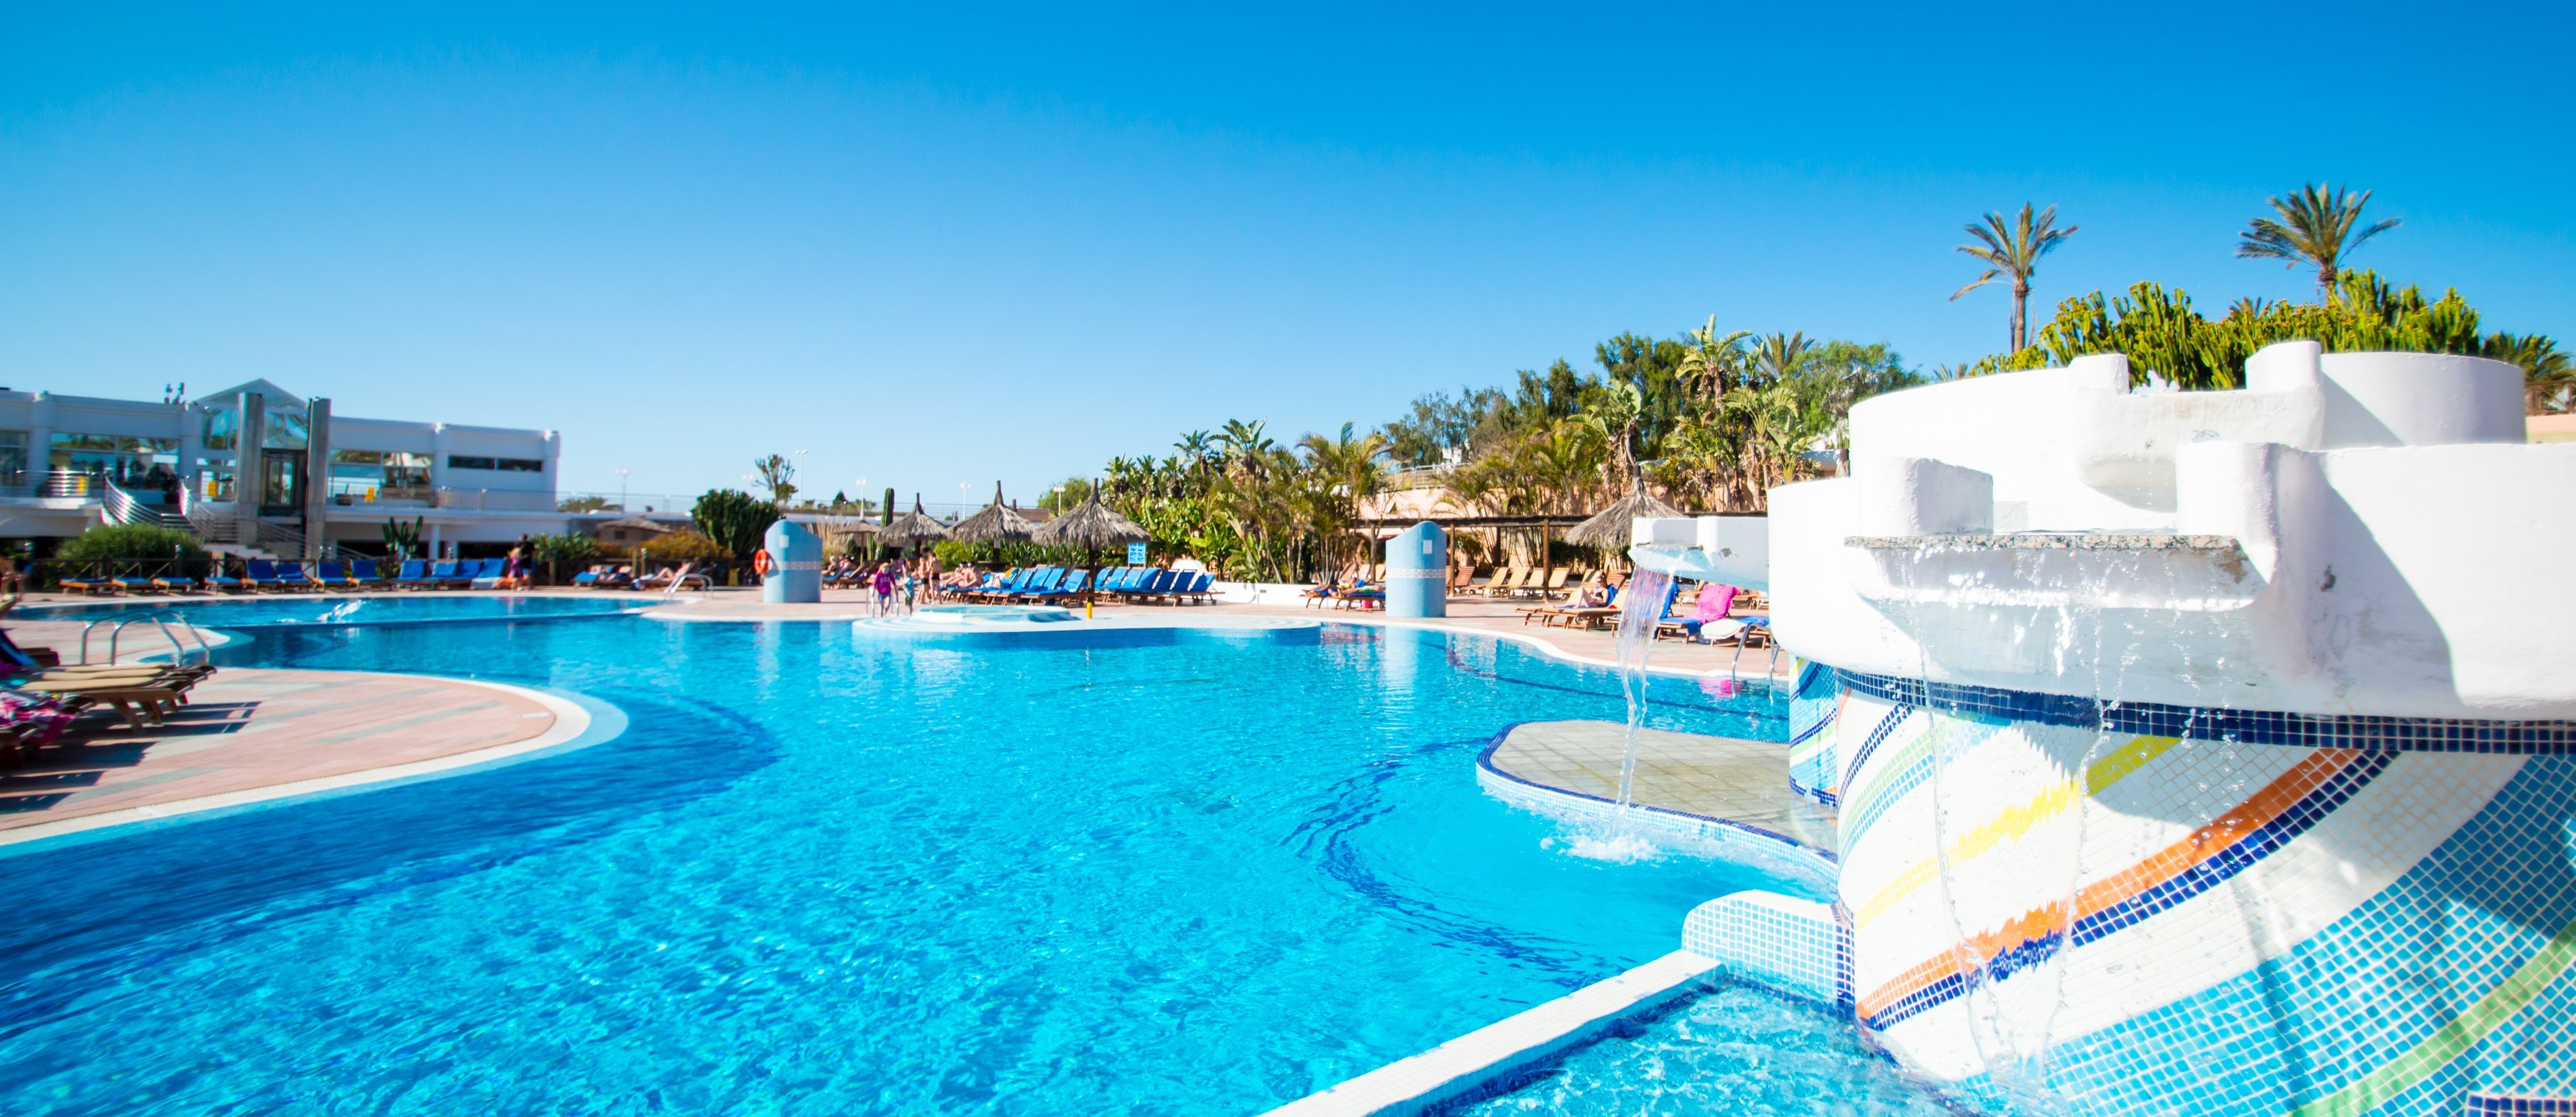 Hotel HL Club Playa Blanca**** - Lanzarote - CLUB PLAYA BLANCA